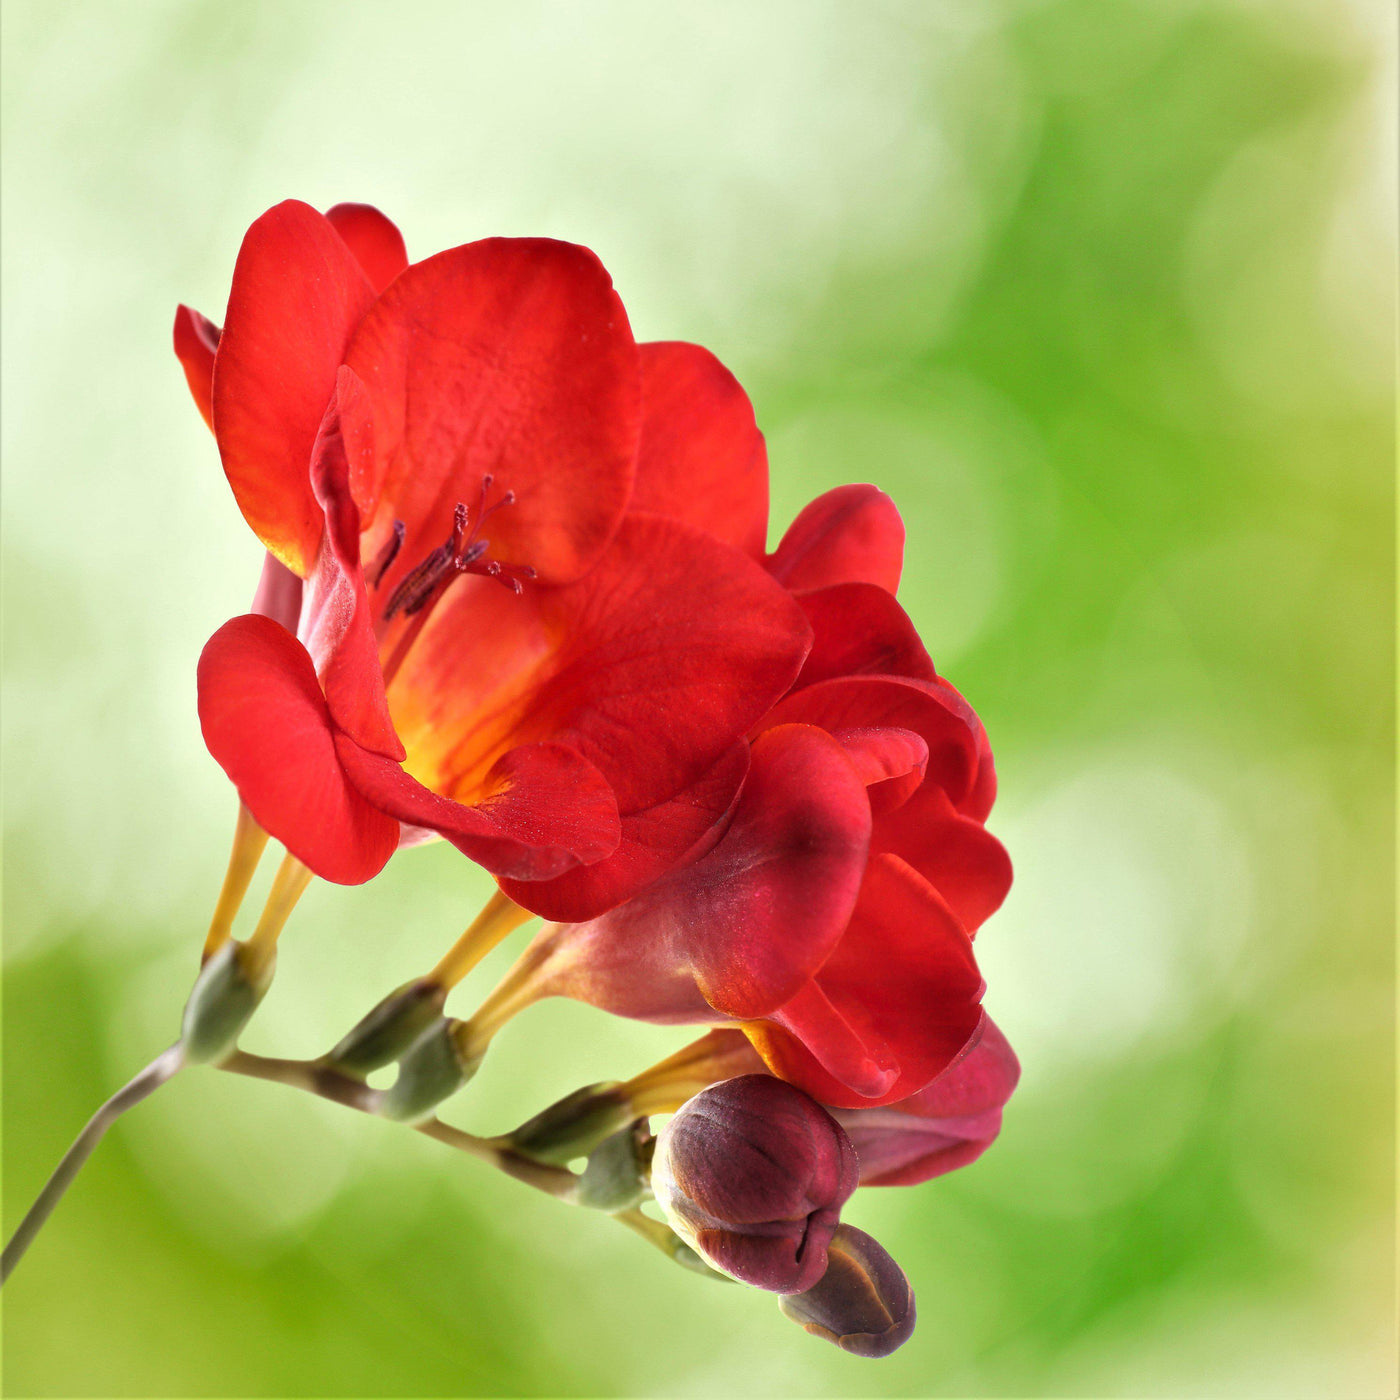 Freesia Single Bicolor   Freesia Lacteal Corms   Fragrant Red and ...